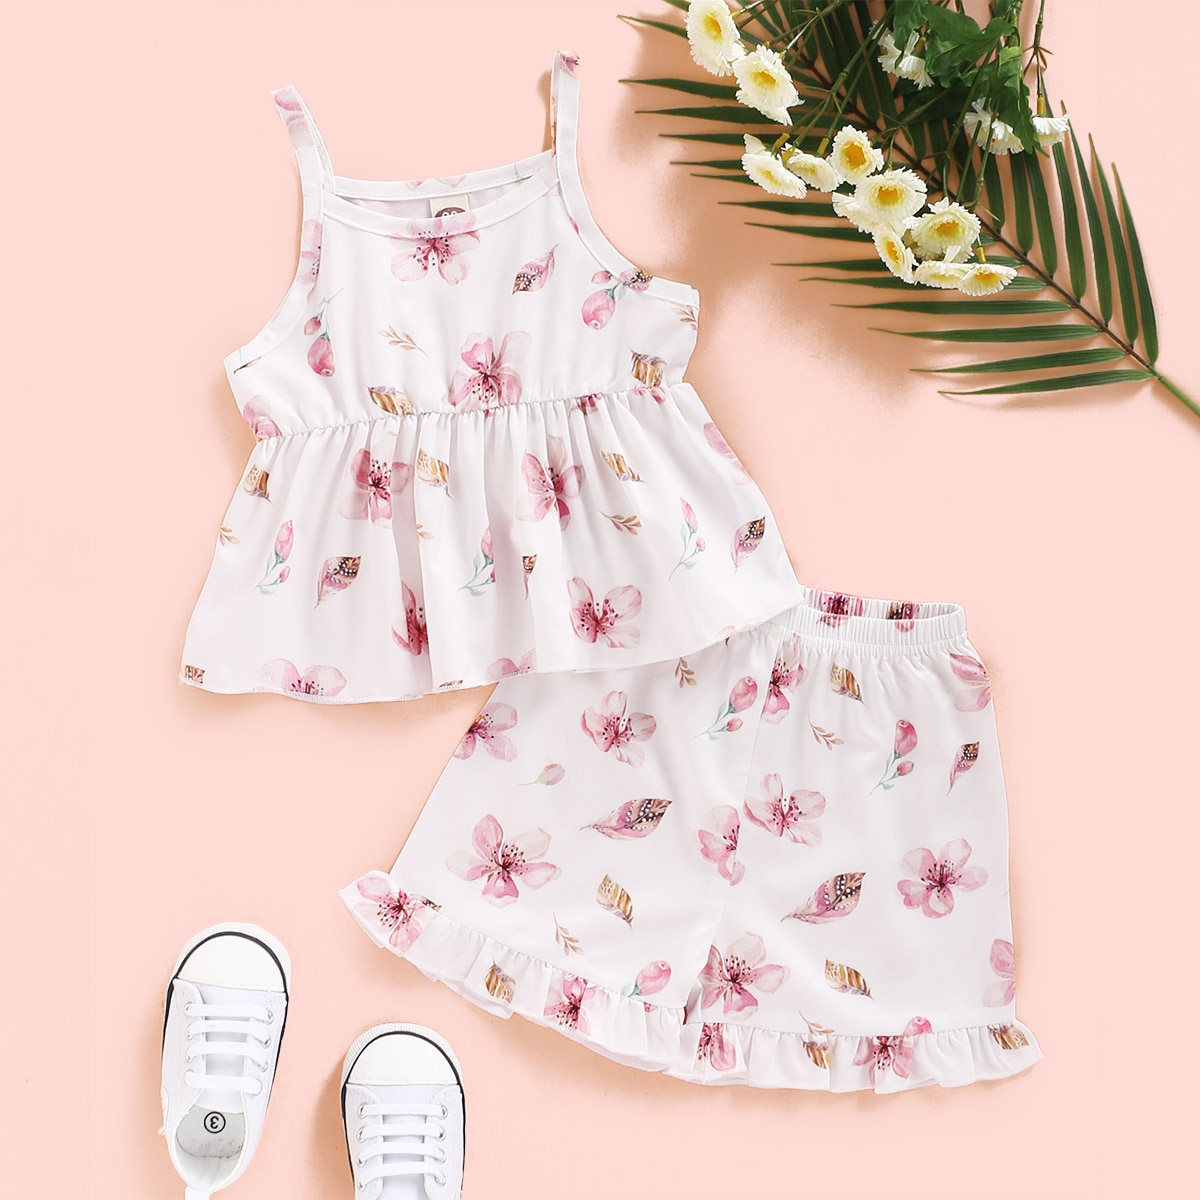 Infant Girls Summer Clothes Set Baby Sleeveless Vest Pink Floral Printed Shirt And Pants Free Shipping Toddler Girls Outfits Set